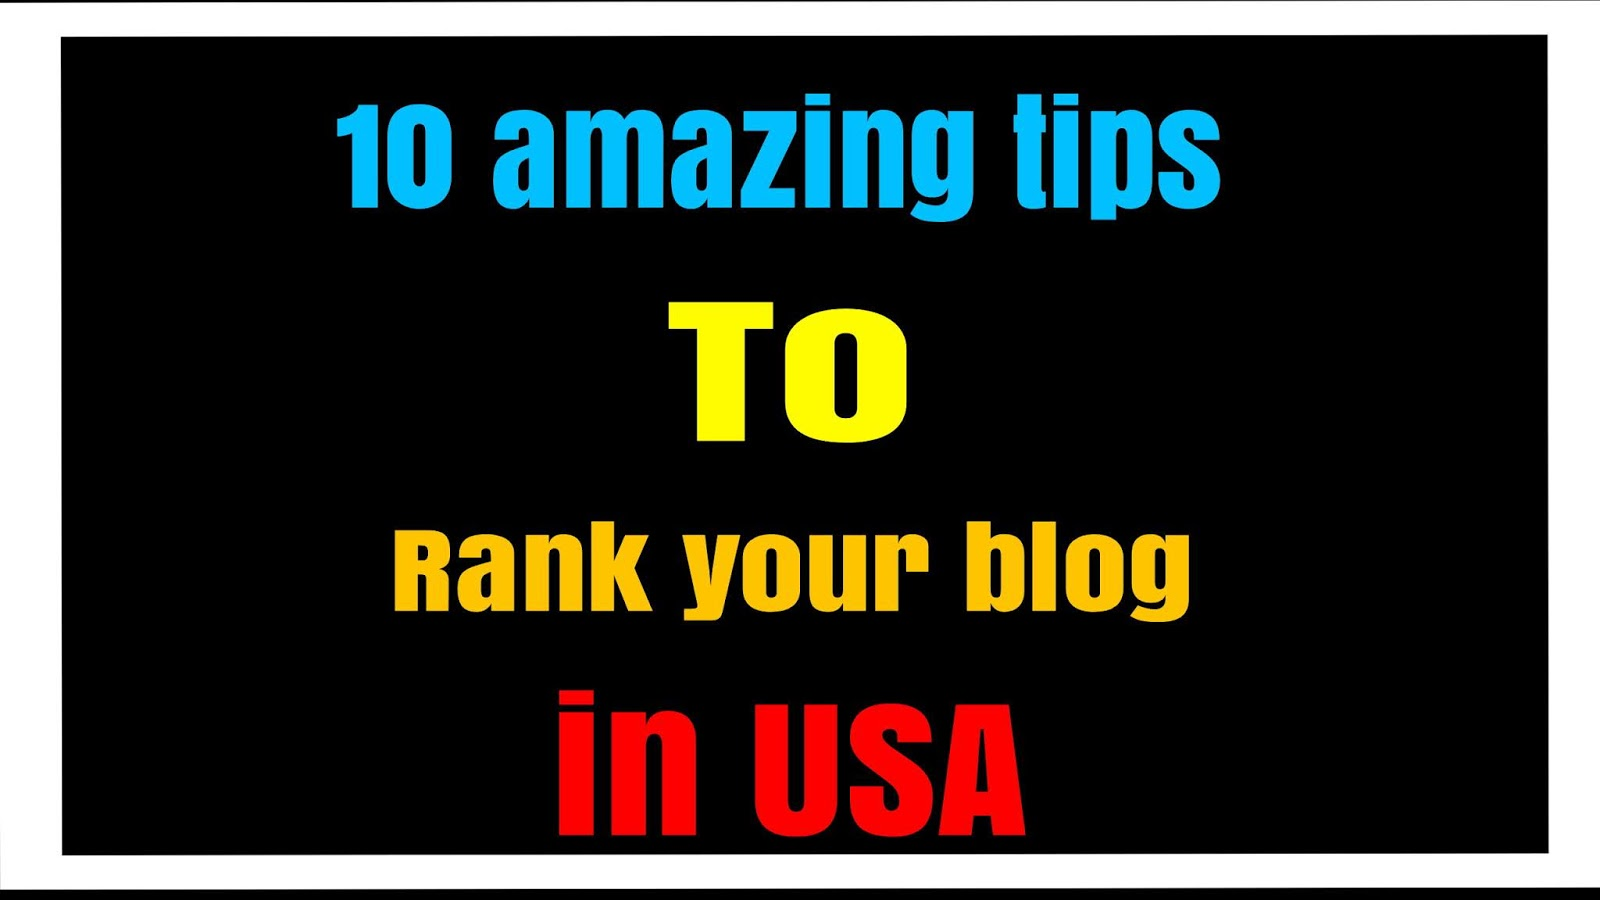 How to rank blog in USA